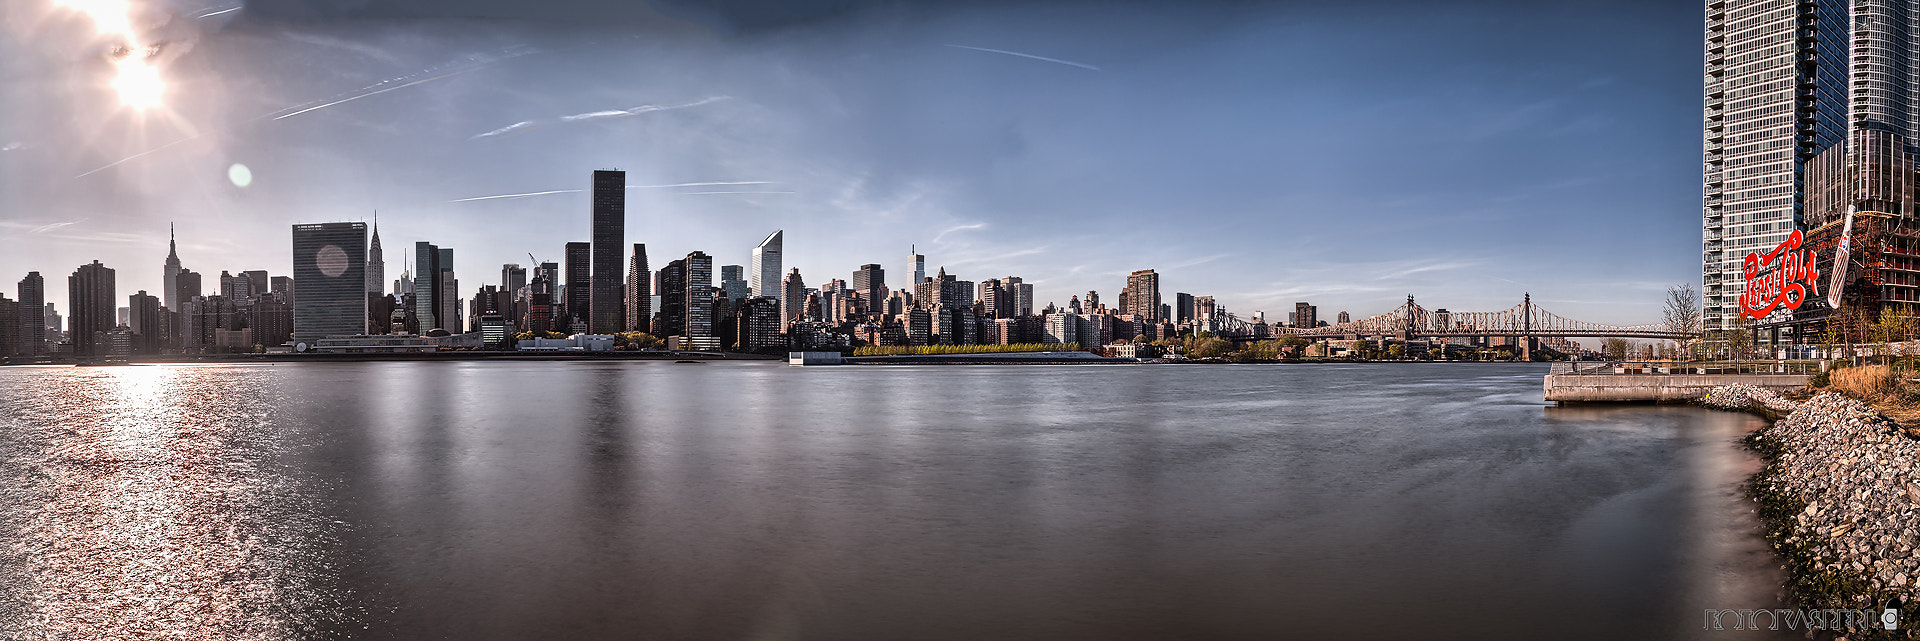 Photograph Manhattan Skyline Panorama by Christian Rödel on 500px